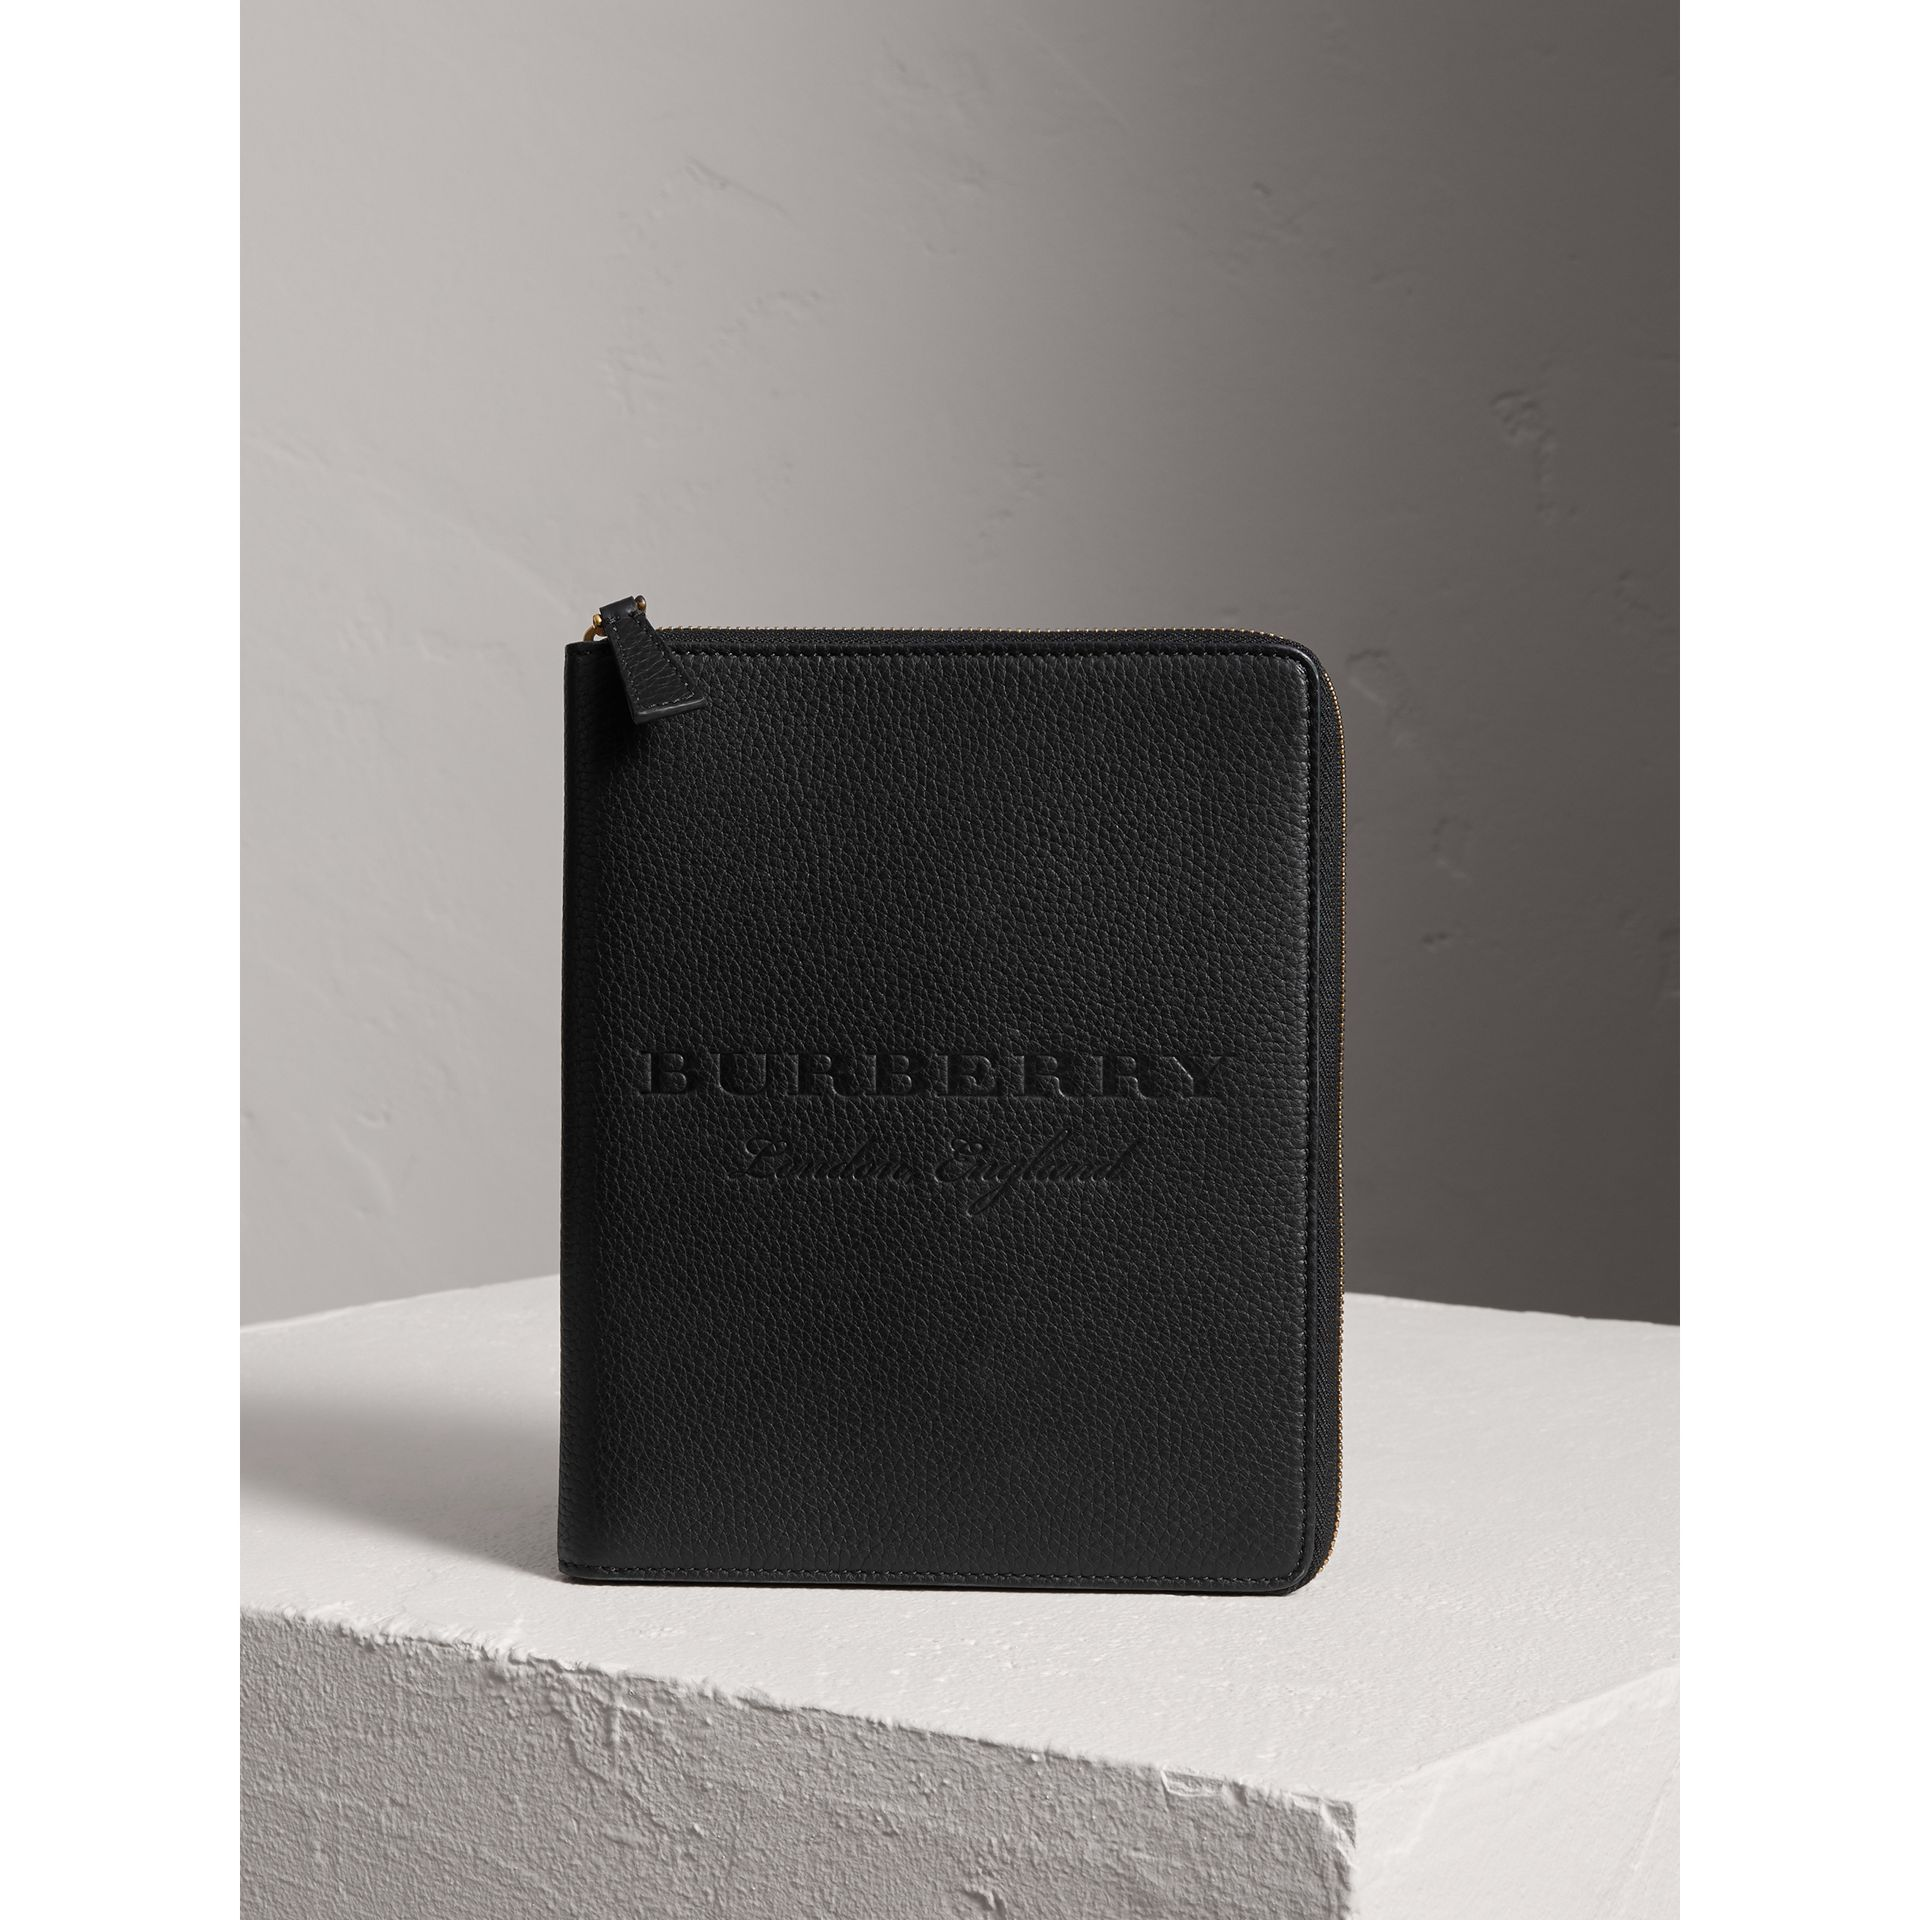 Embossed Leather Ziparound A5 Notebook Case in Black | Burberry Canada - gallery image 4